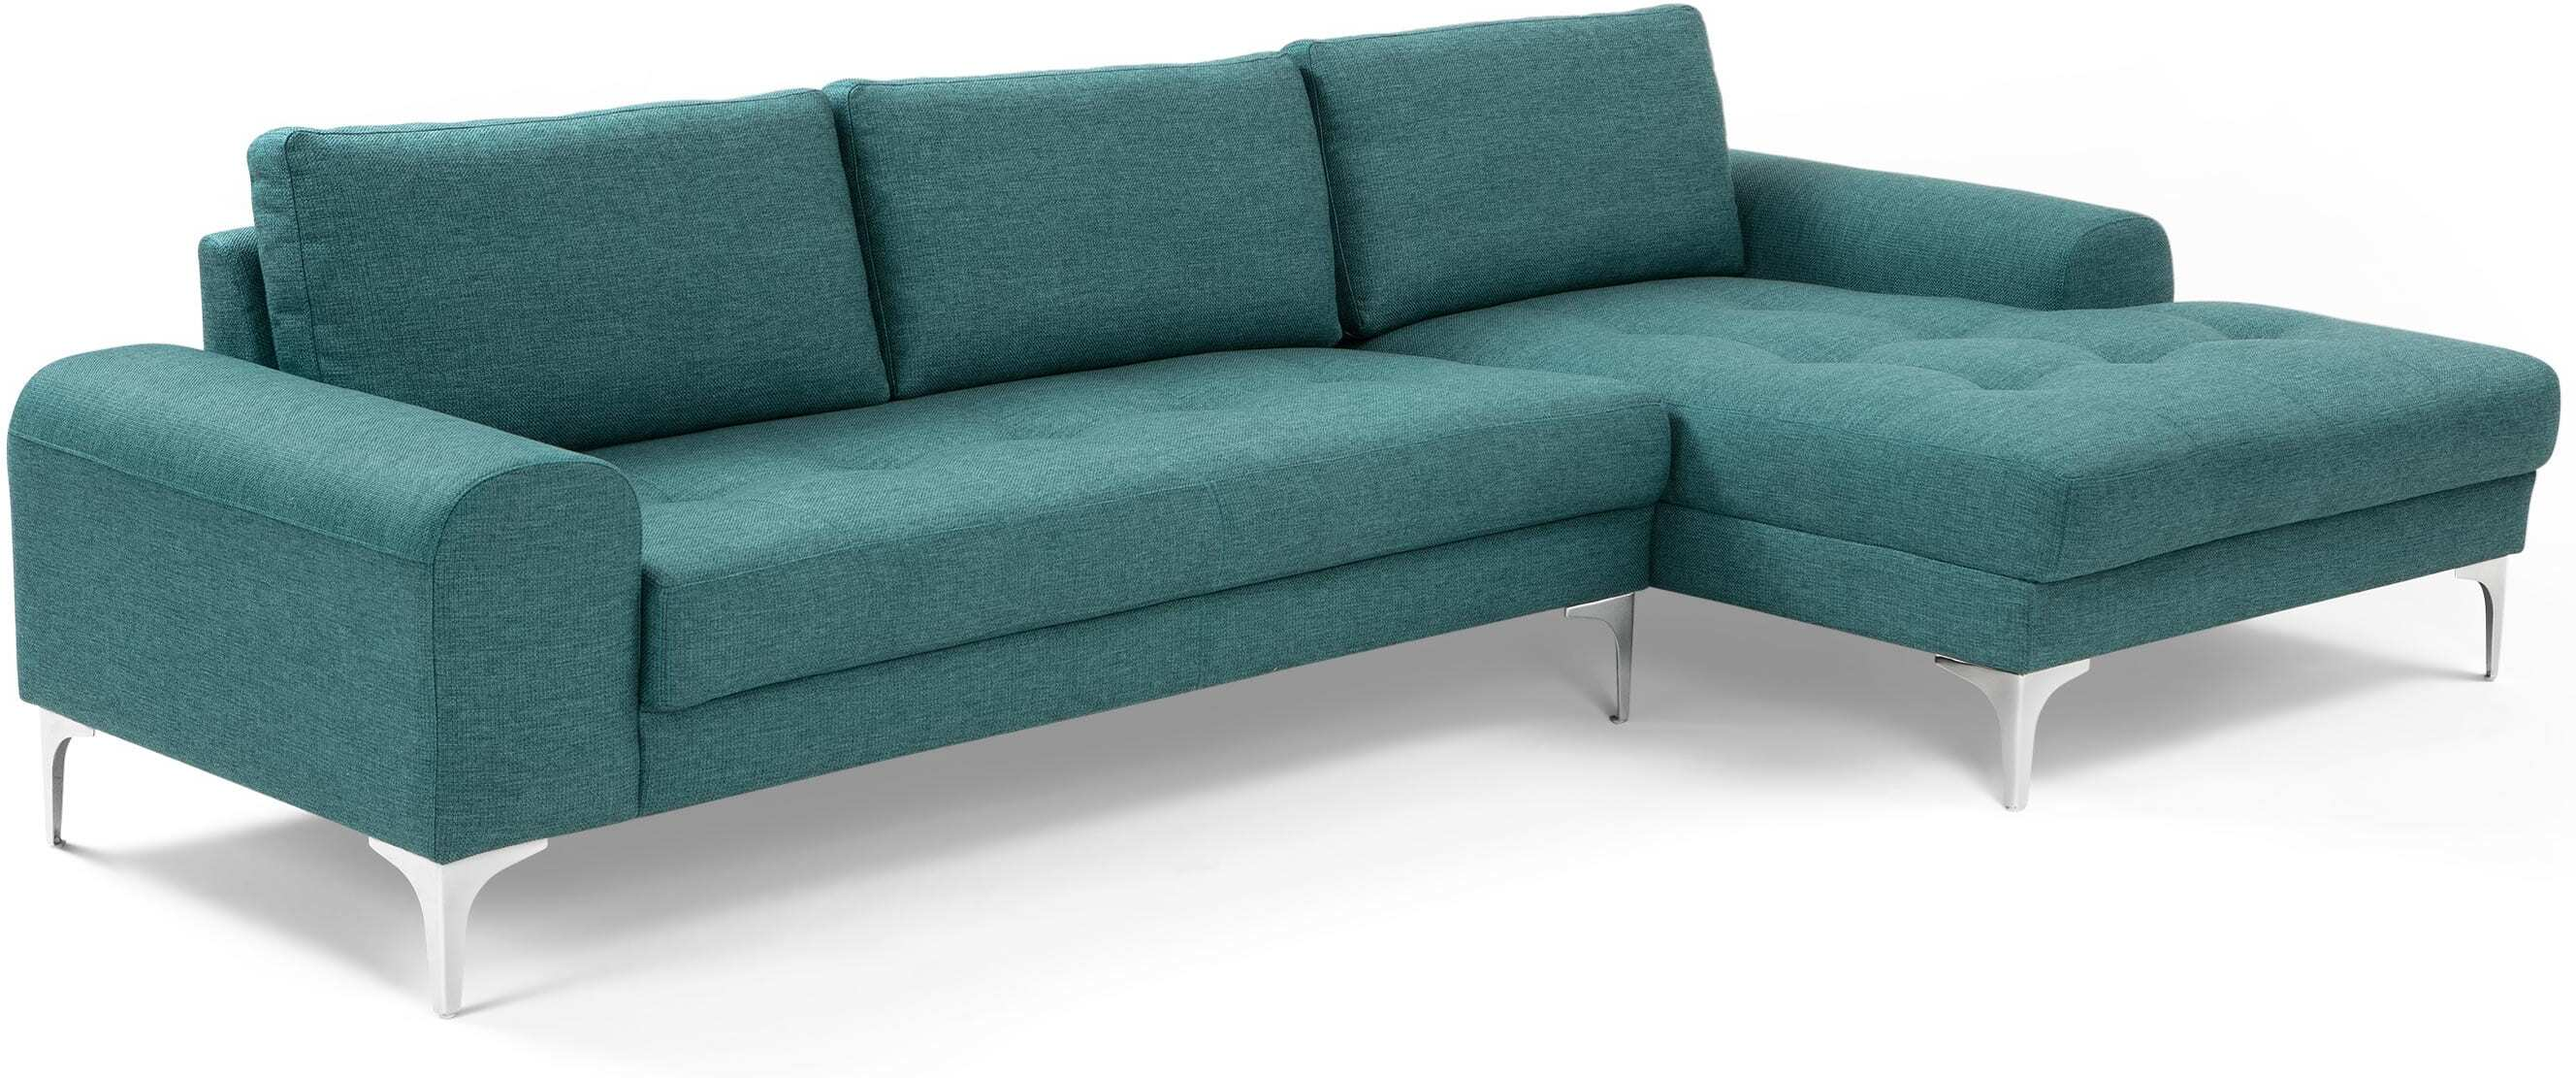 Vittorio Right Hand Facing Corner Sofa Group Teal